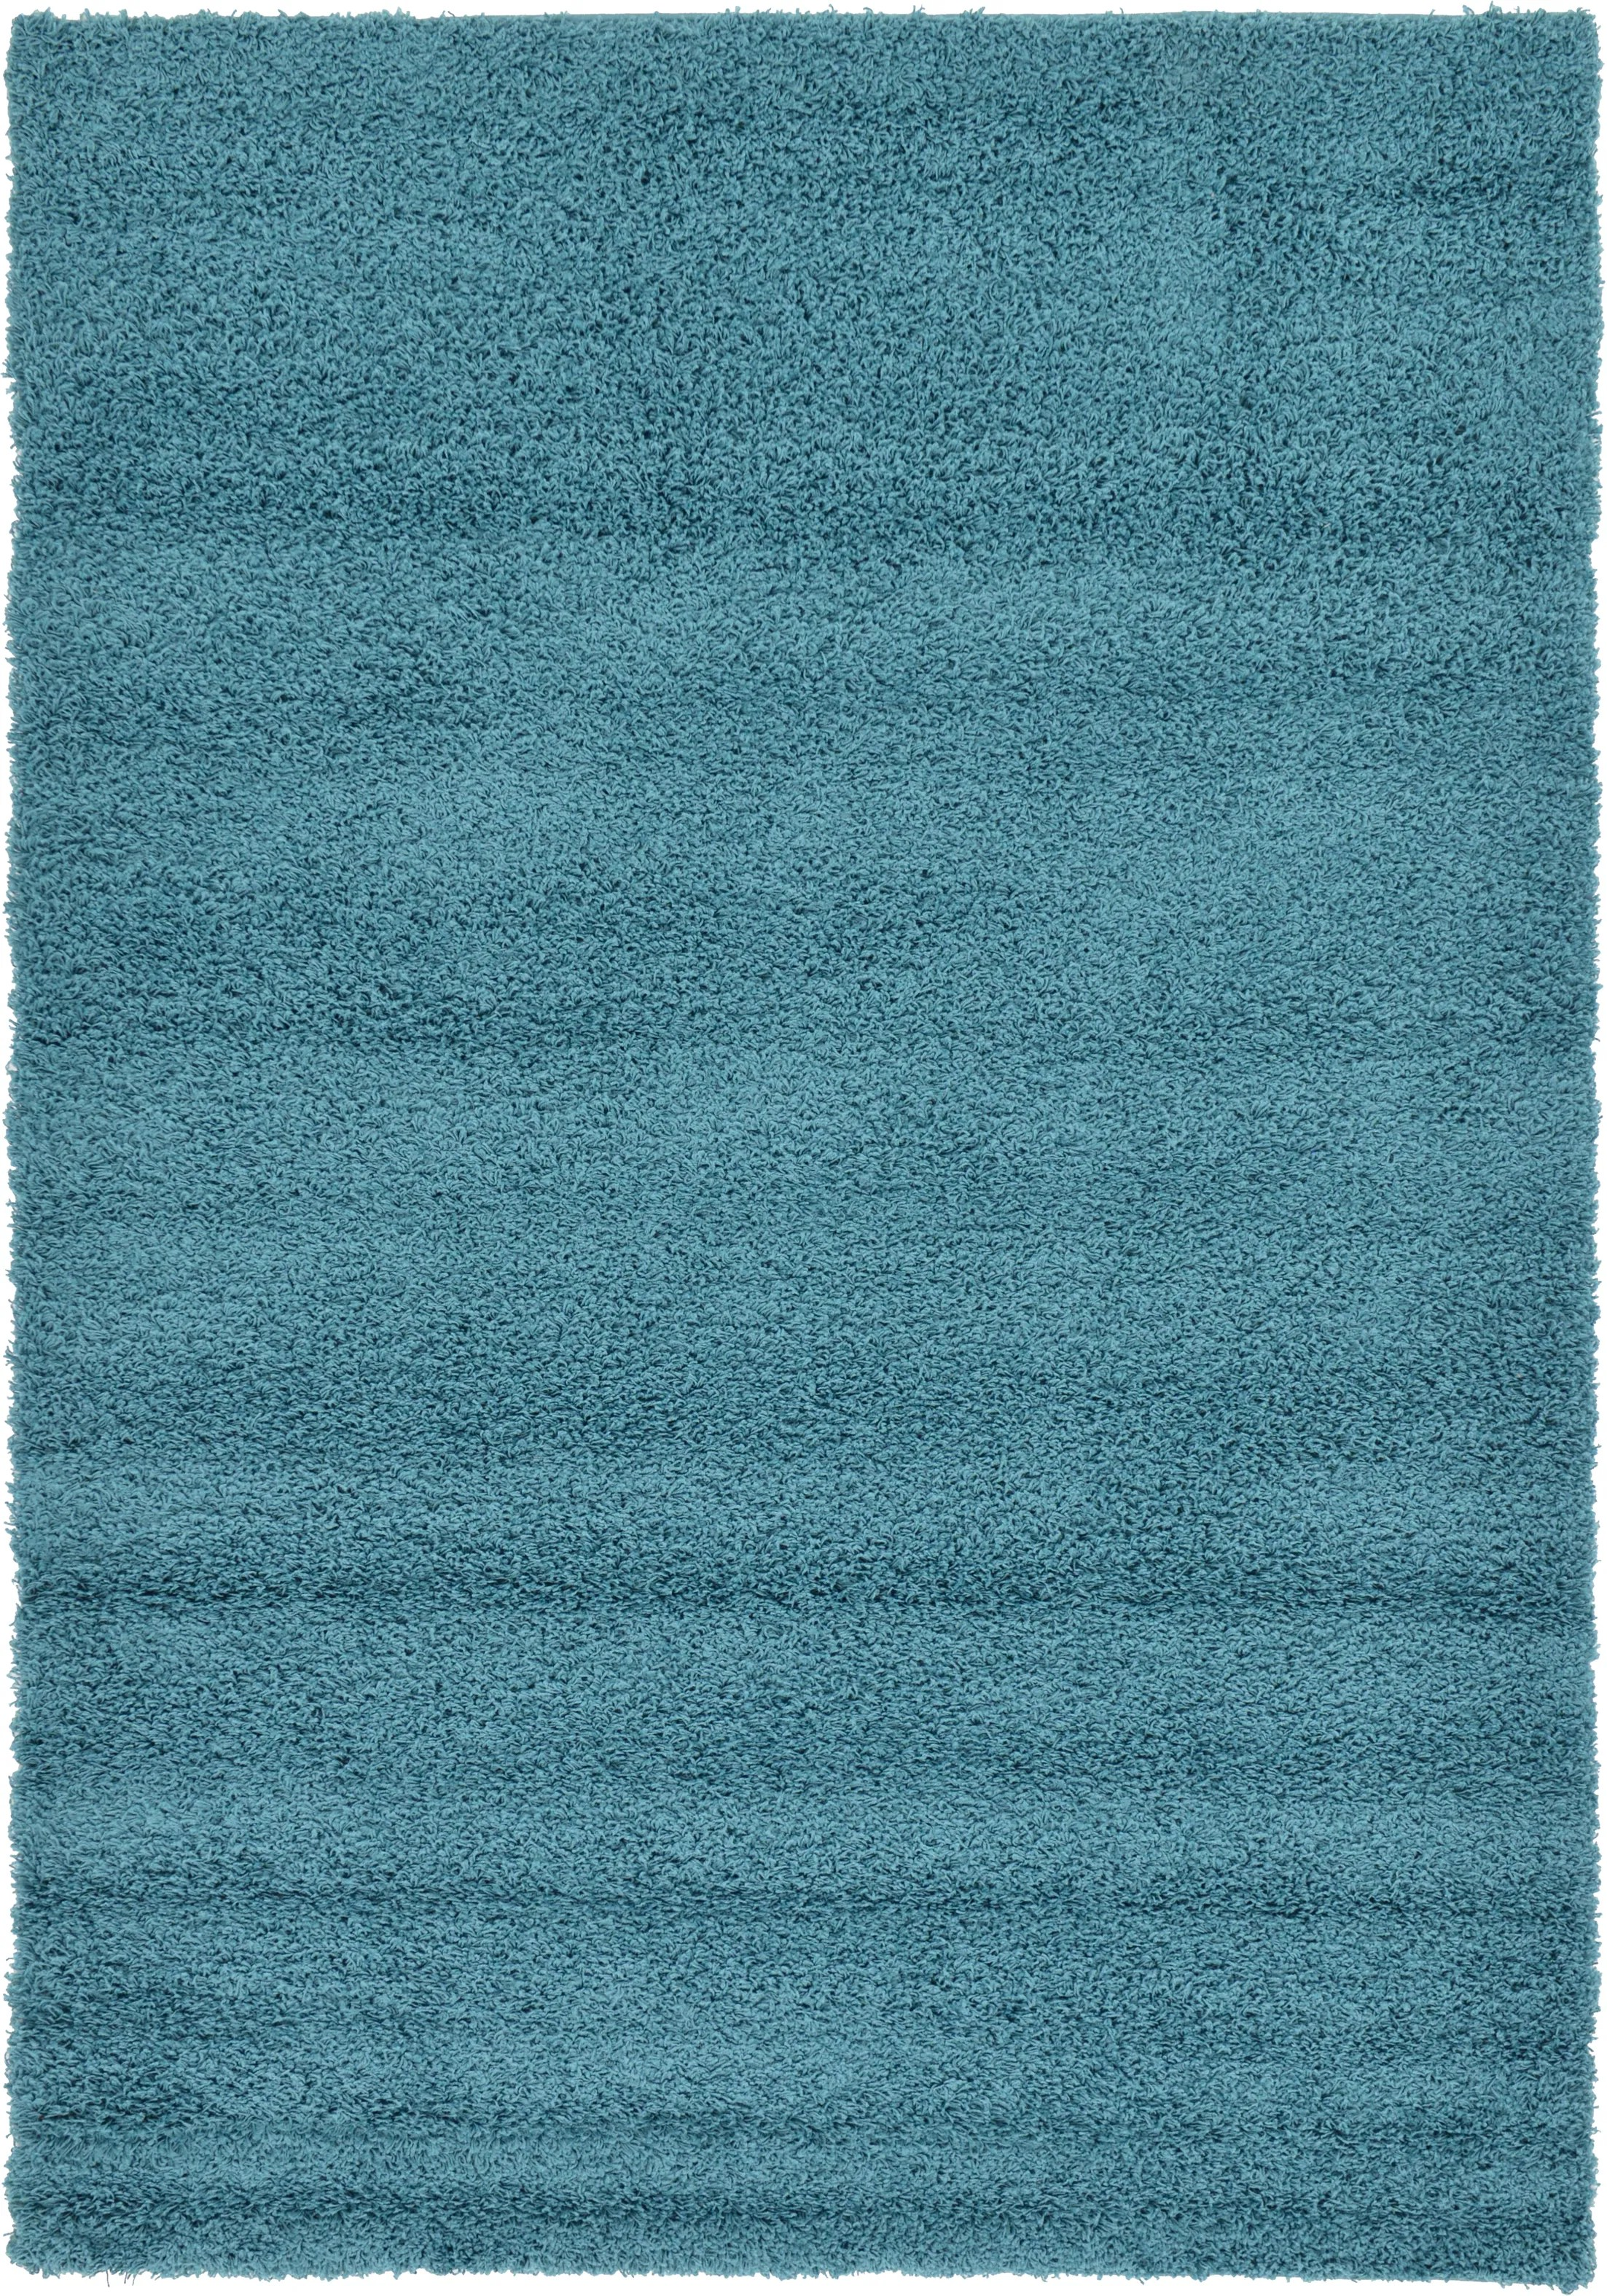 Teal Color Area Rugs Area Rugs Lilah Teal Blue Area Rug April 2019